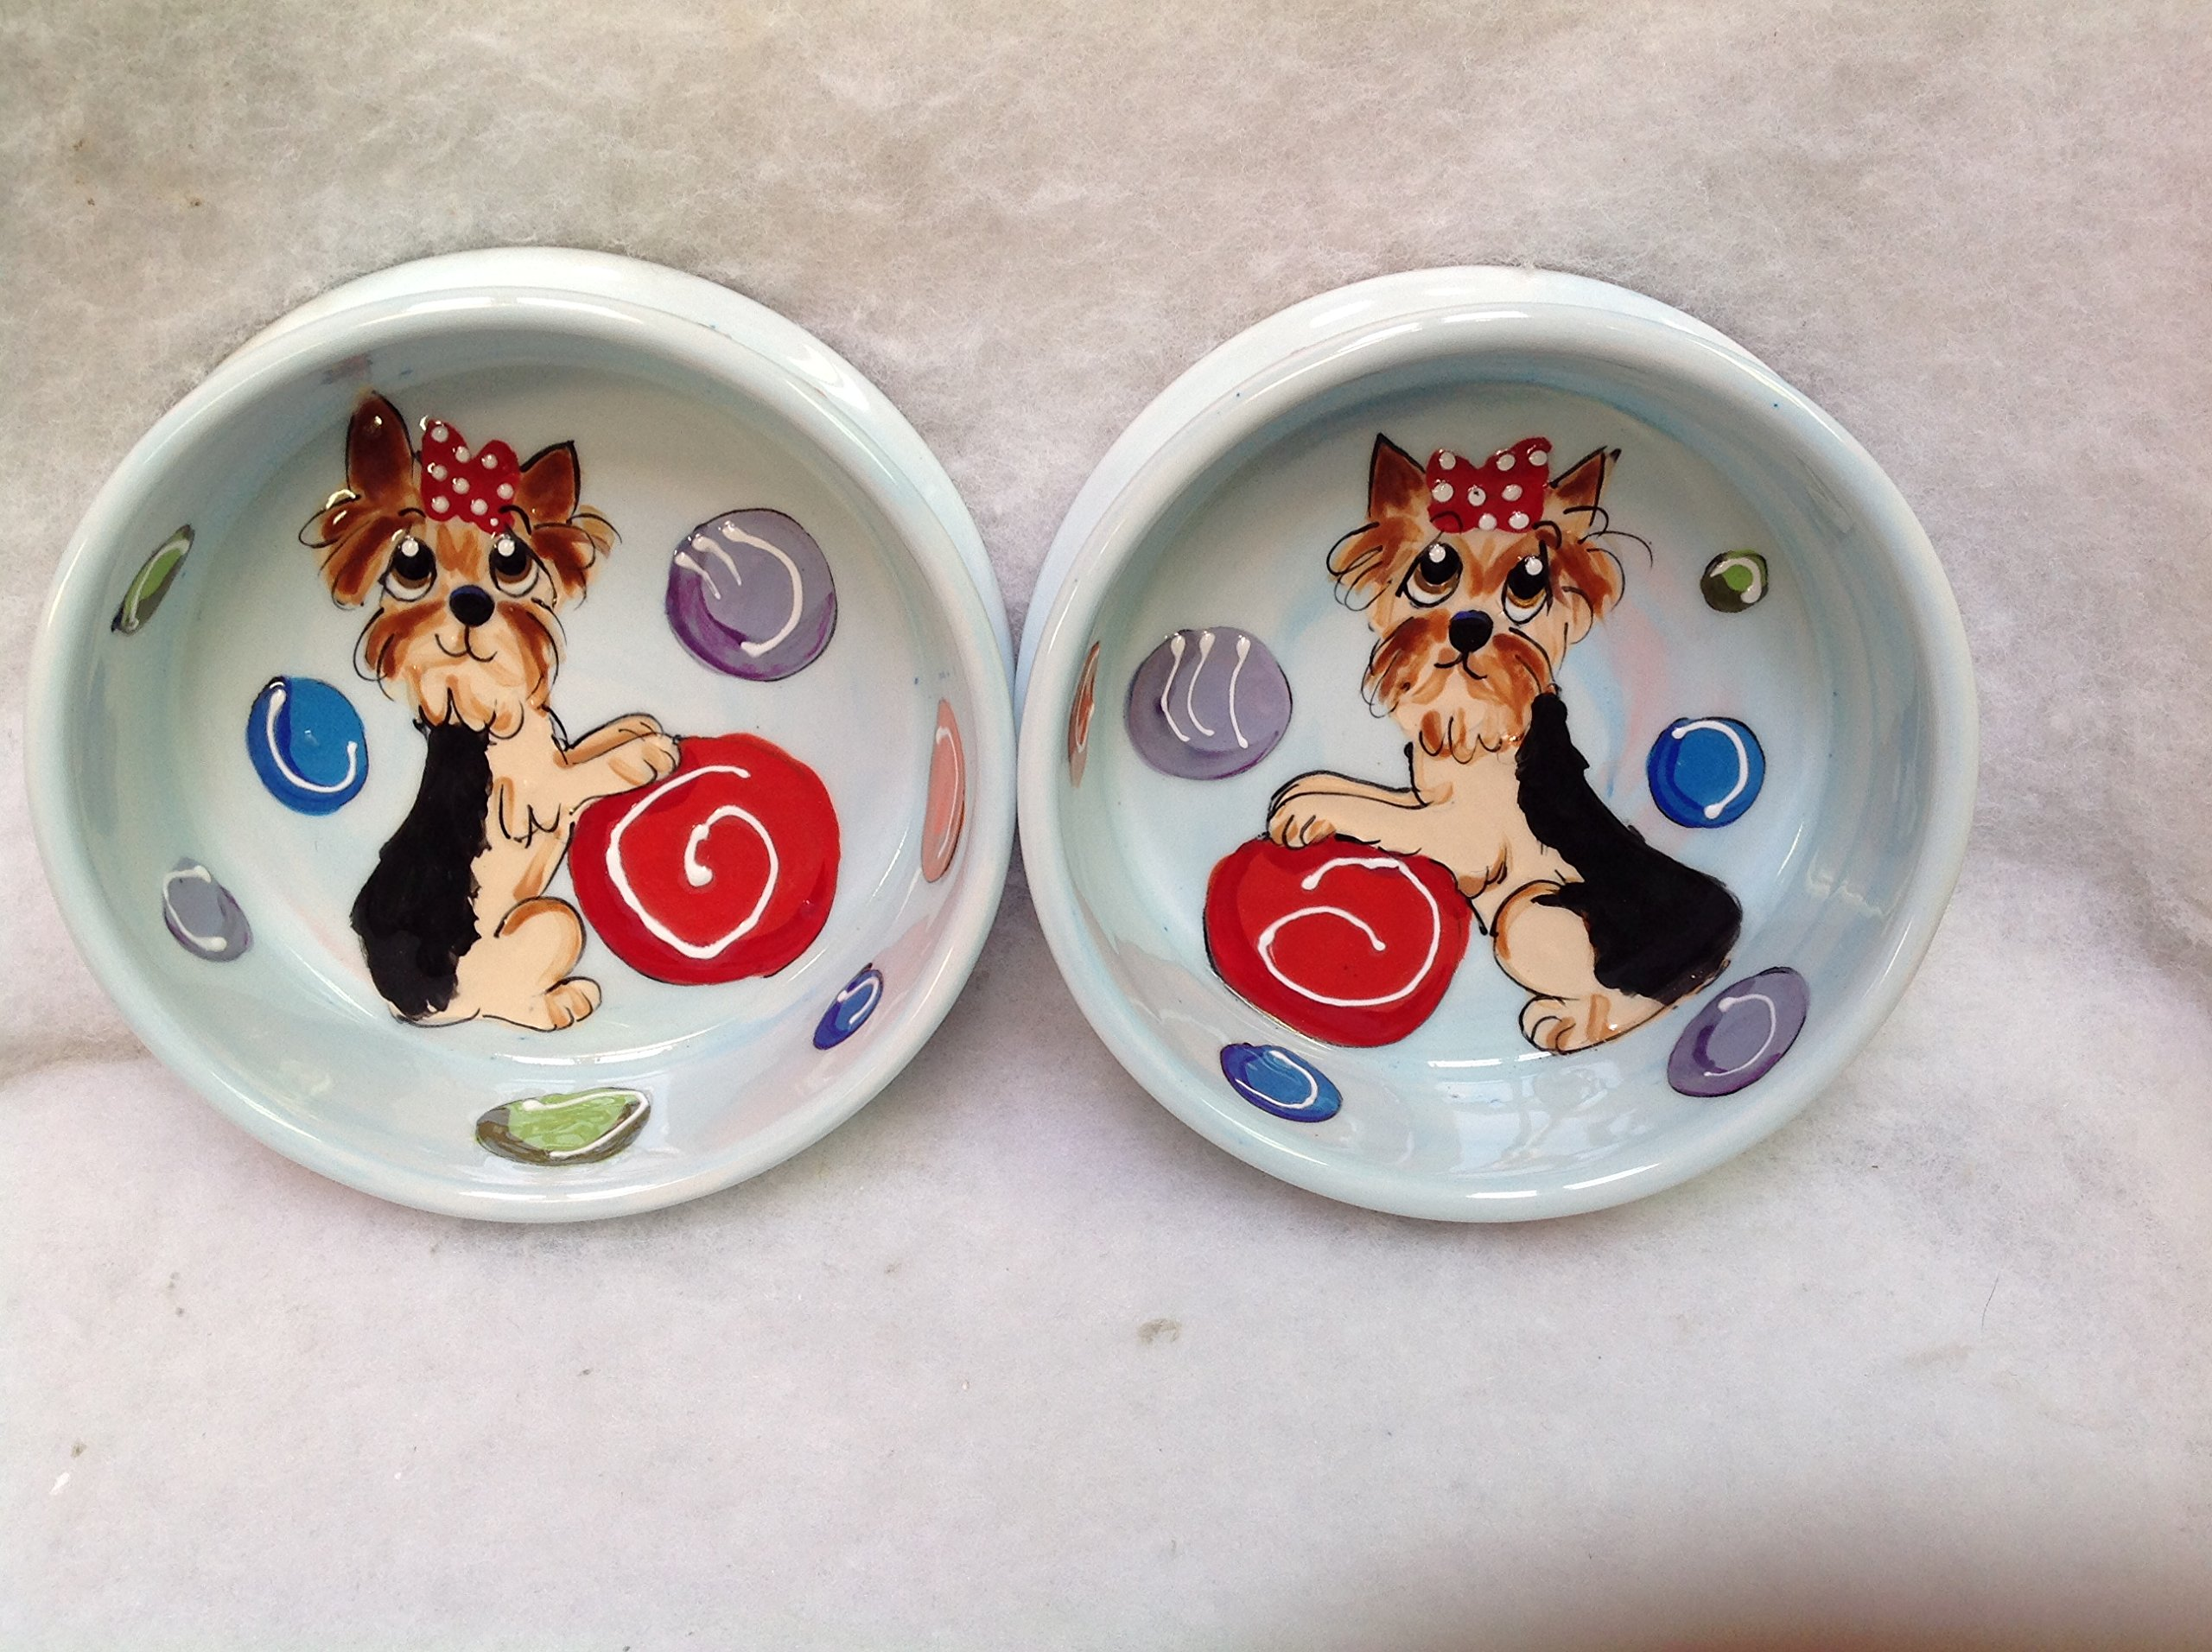 Yorkie 8''/6'' Pet Bowls for Food/Water. Personalized at no Charge. Signed by Artist, Debby Carman.